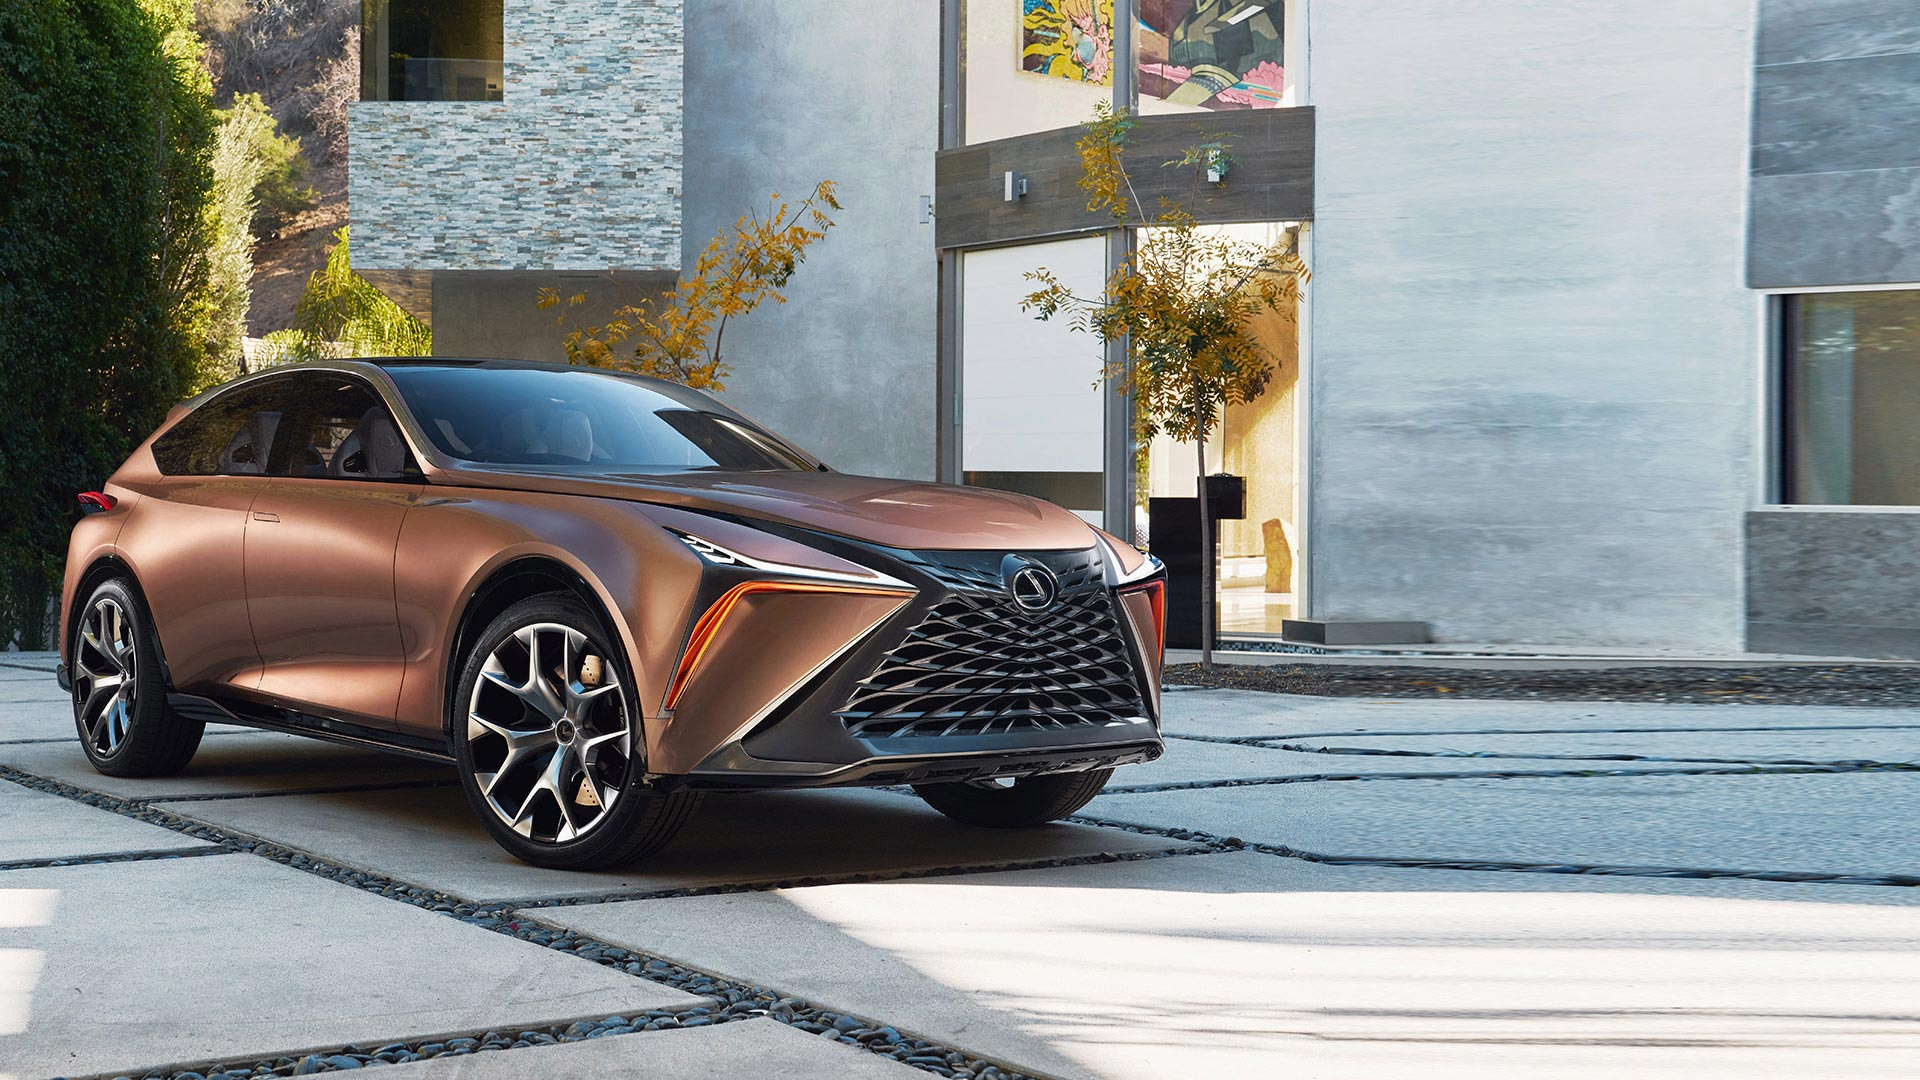 2018 lexus ux key features 1920x1080 v2